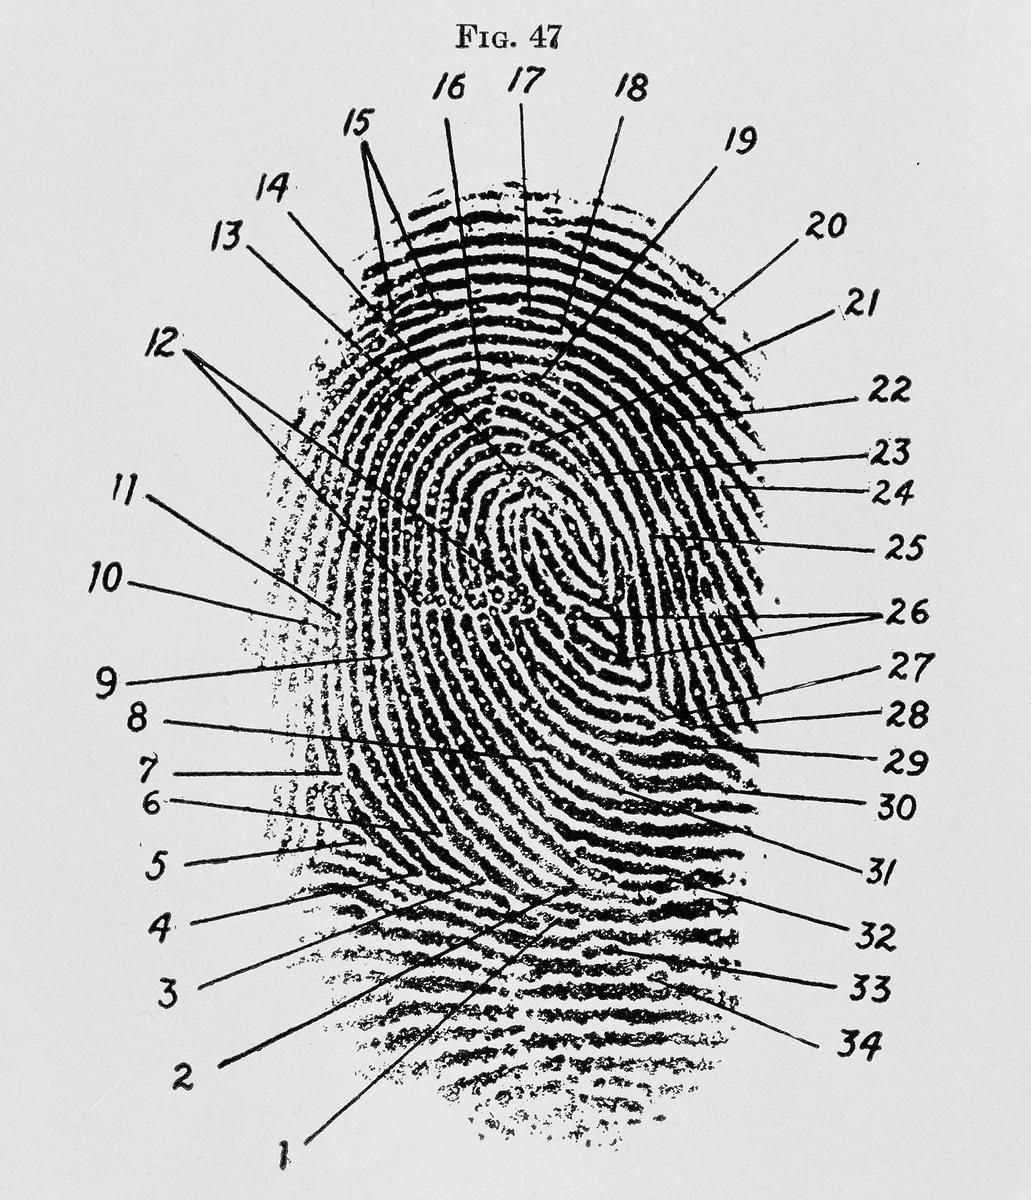 proof   evidence   fingerprint as a visual  this is a fingerprint diagram  1940  i like how it